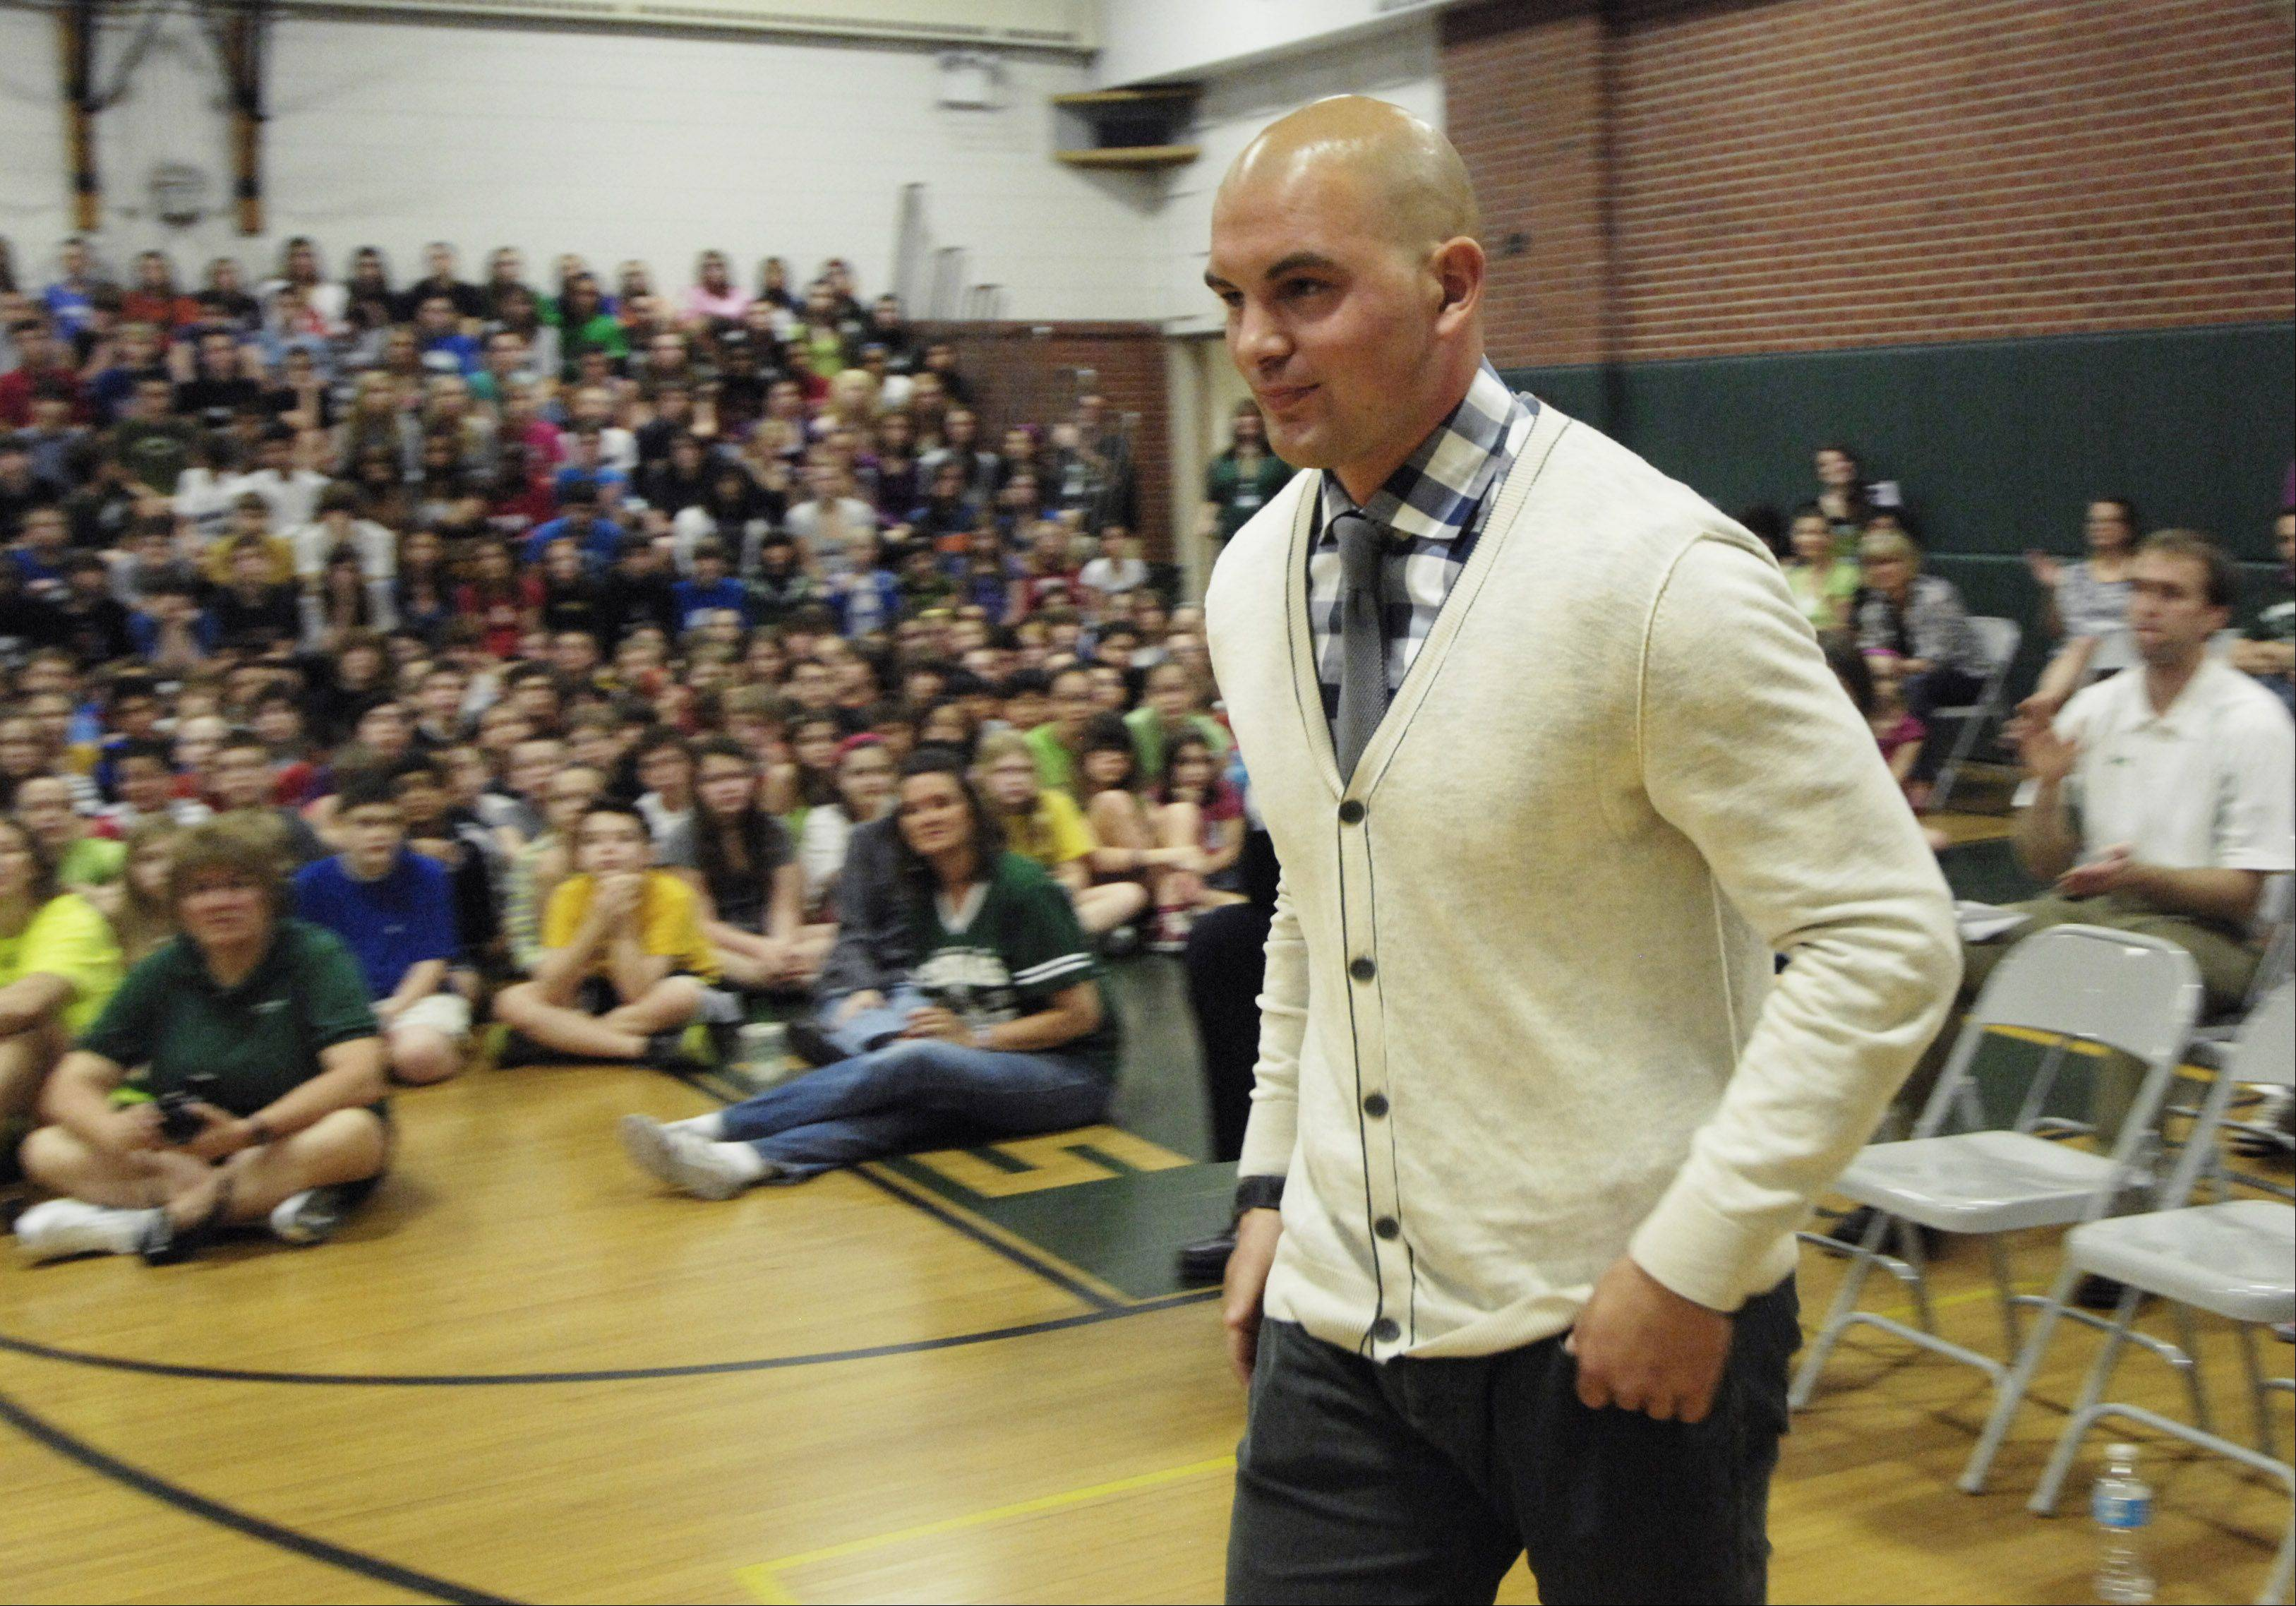 NFL safety Tom Zbikowski, who was honored at Thomas Middle School in Arlington Heights Thursday for his athletic success, is coming home to play for the Bears next season.